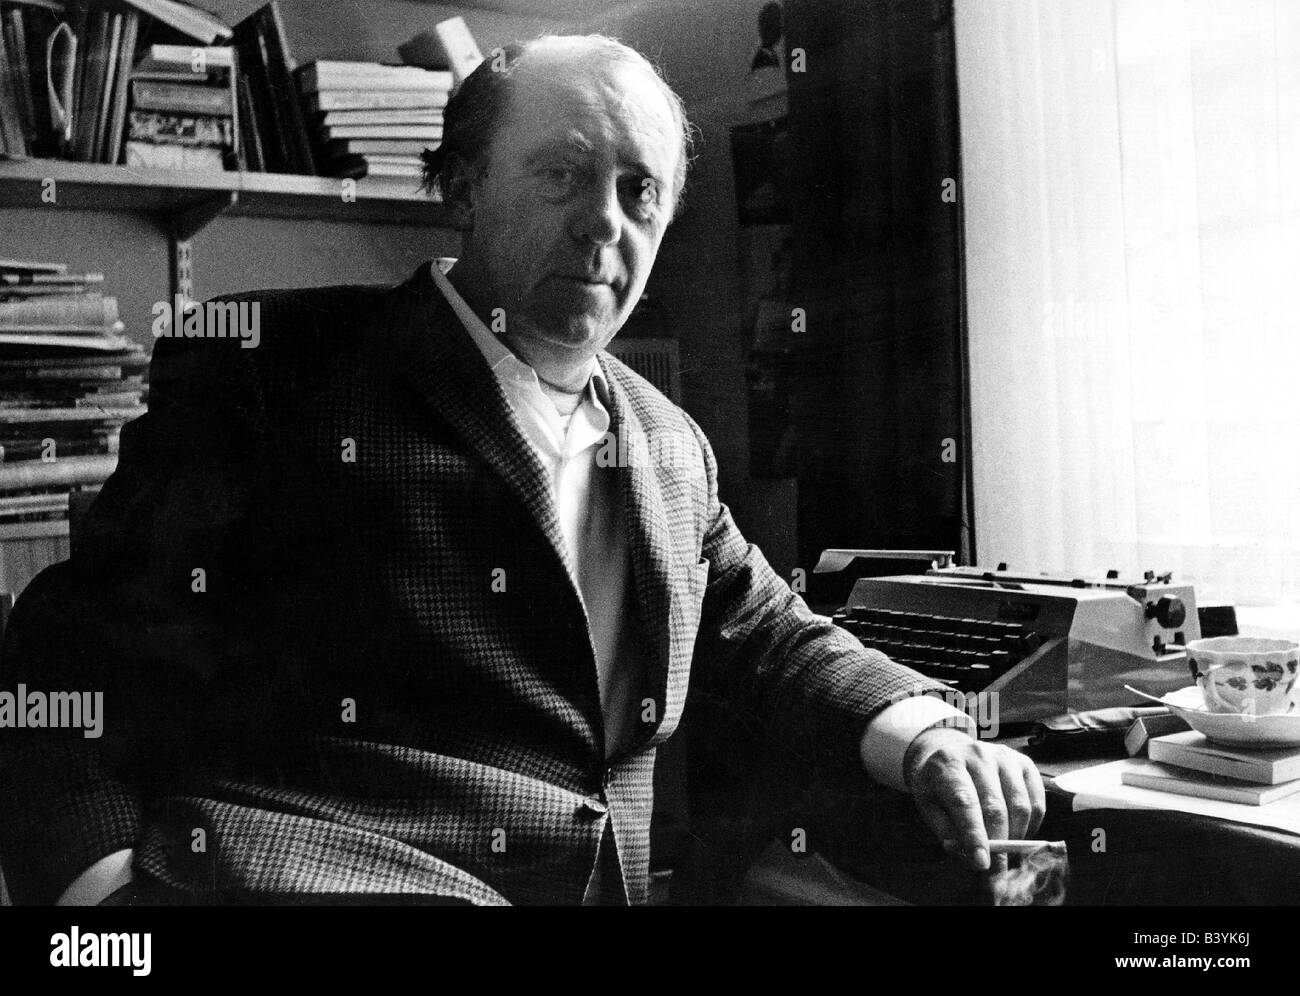 Böll, Heinrich  21.12.1917 - 16.7.1985, German author / writer, half length, at his desk,  Cologne, Germany, - Stock Image